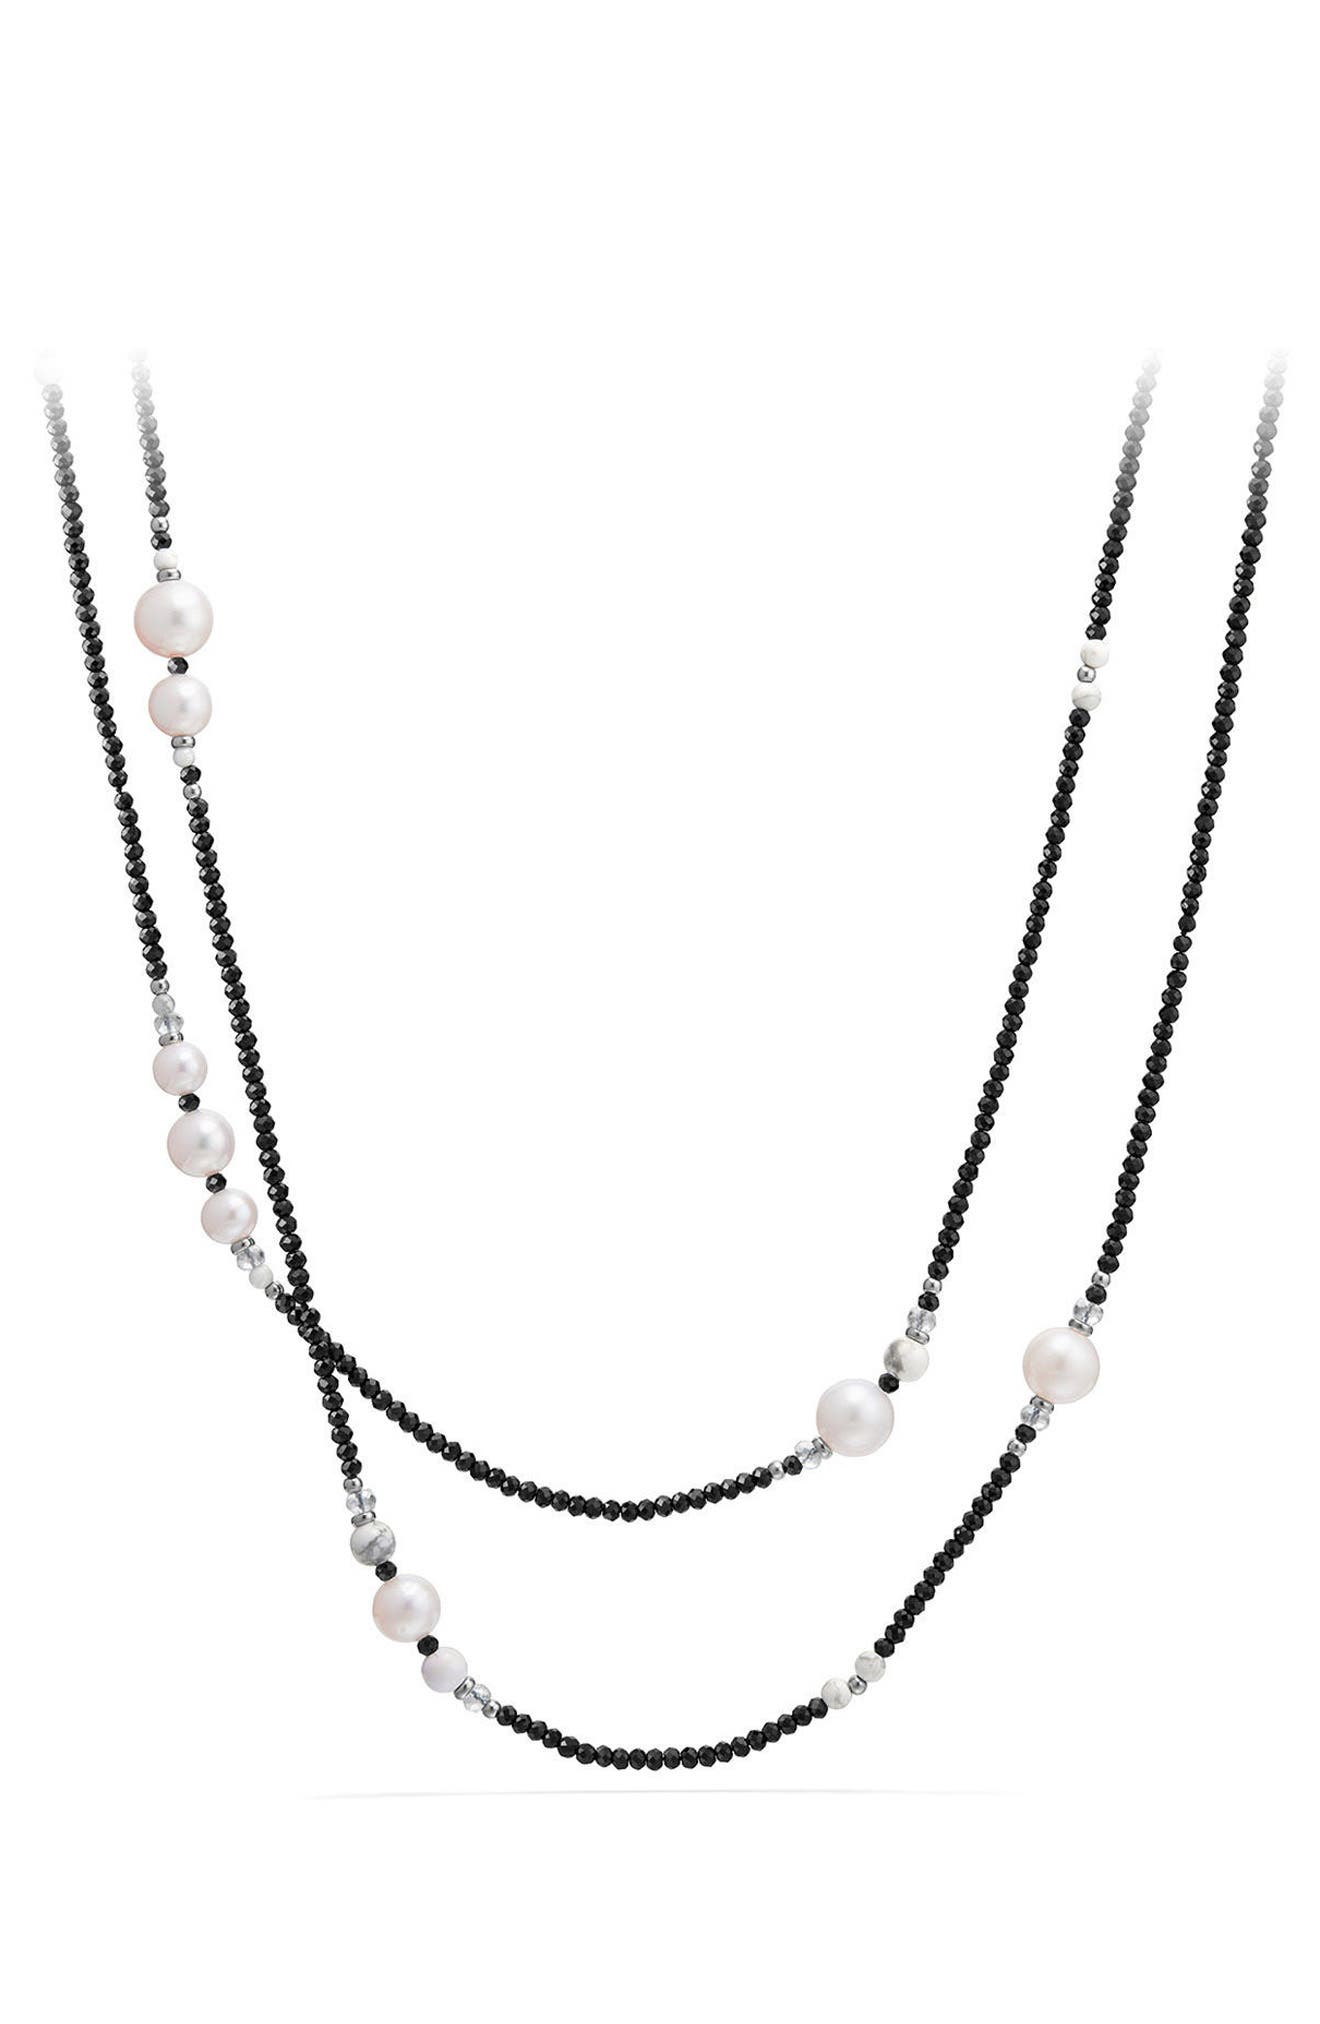 David Yurman Solari - Tweejoux Pearl Necklace